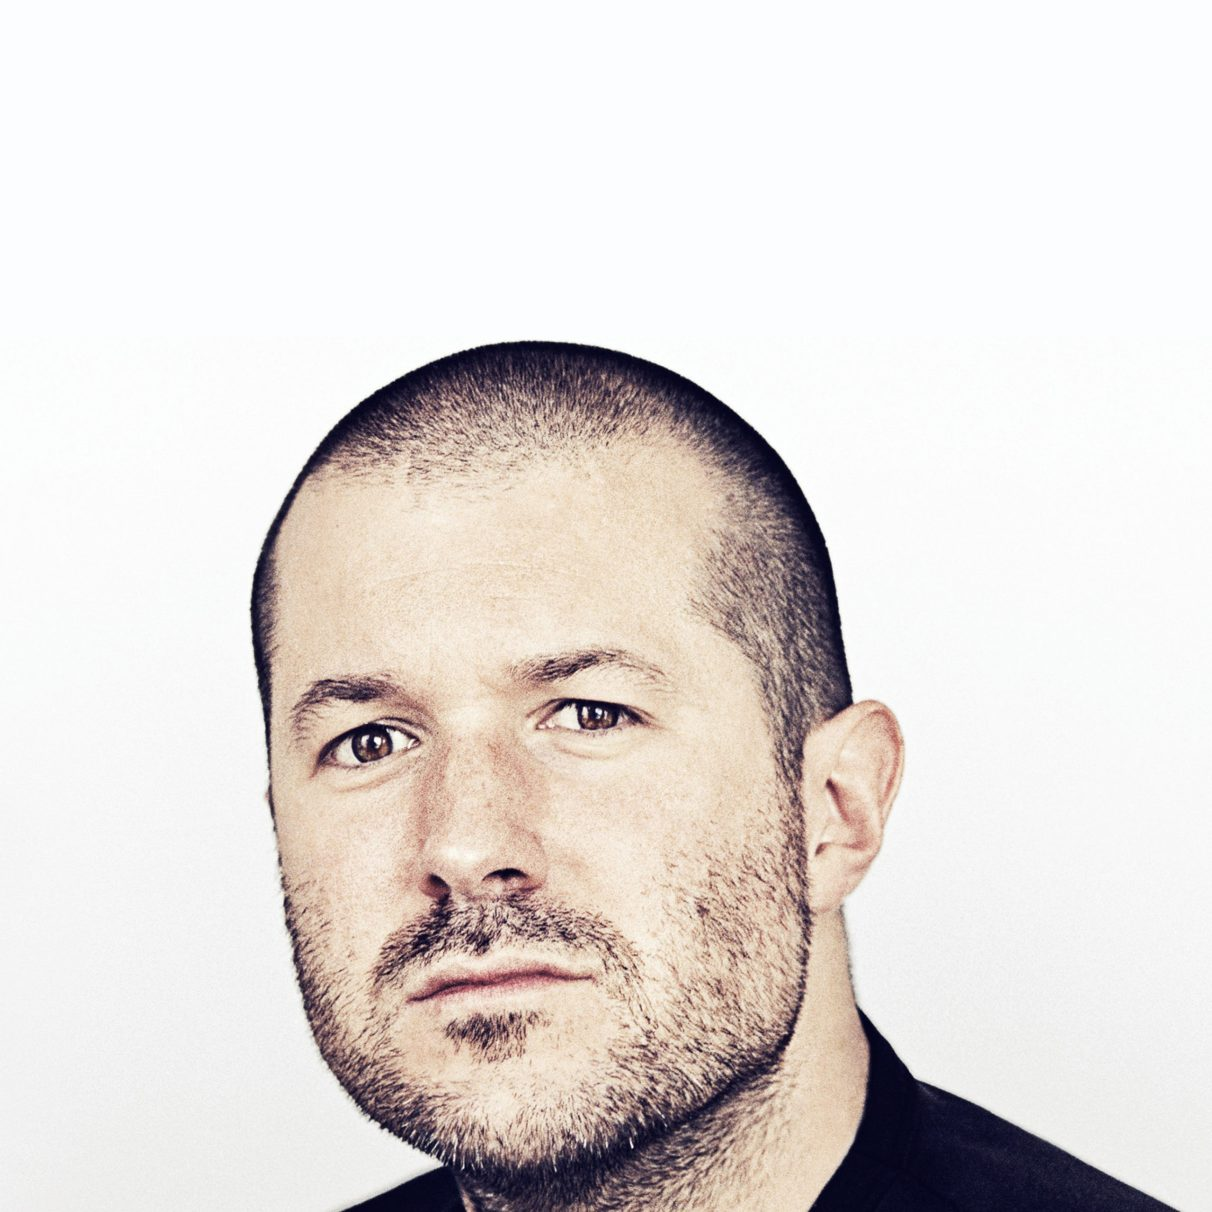 cd_2732x2732_0029_freeios7-com_apple_wallpaper_jony-ive-cool_ipad_retina_parallax